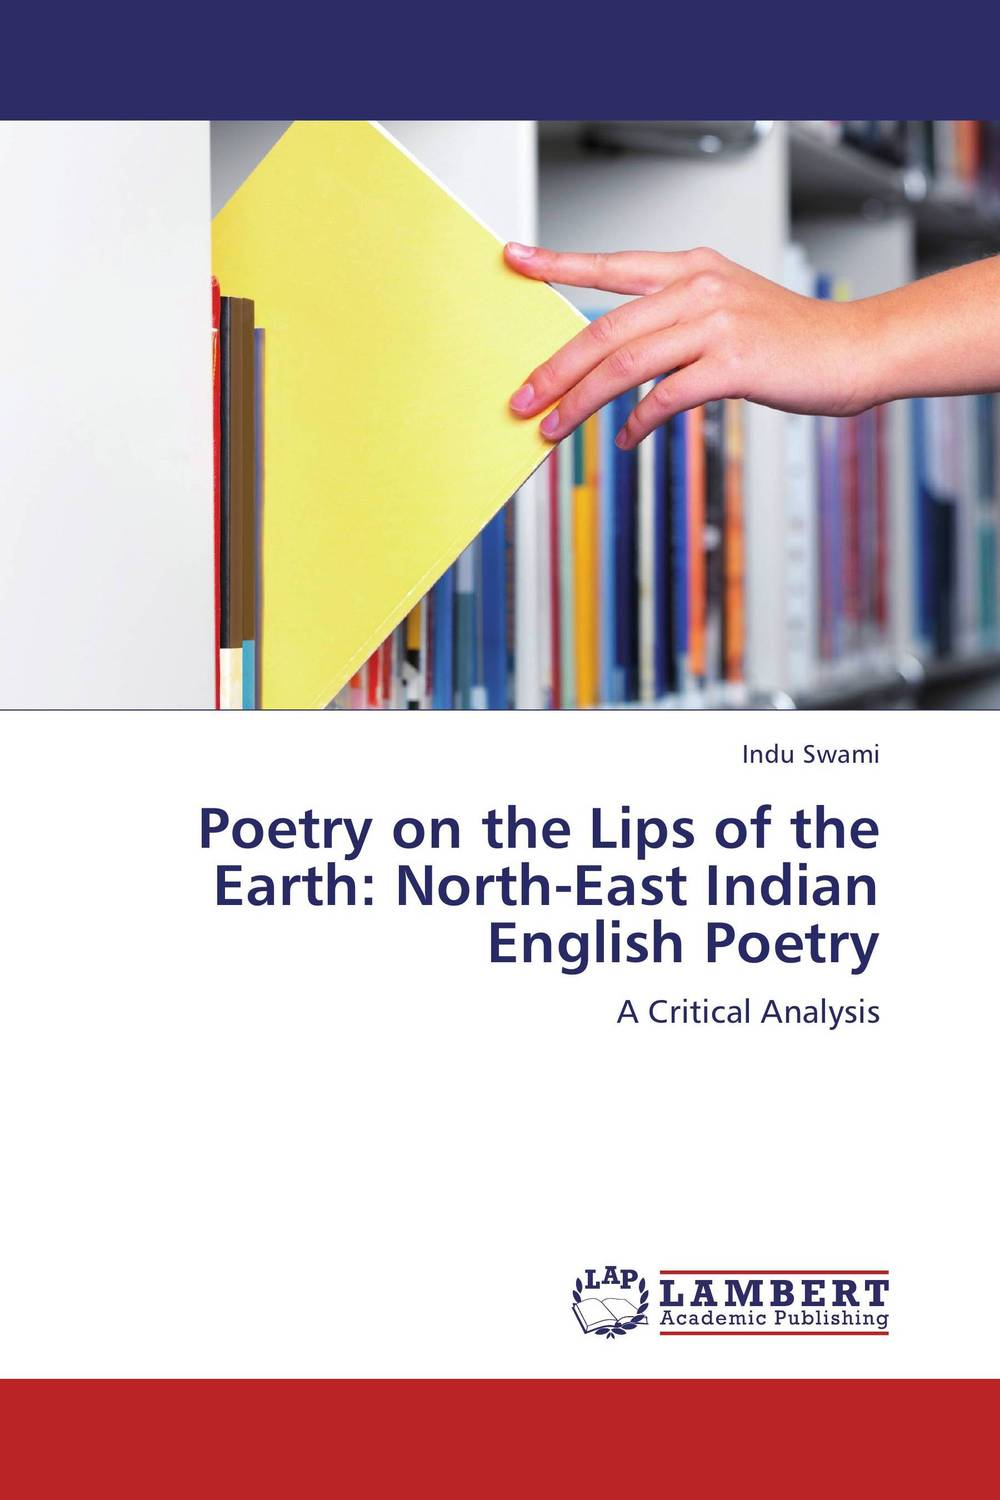 Poetry on the Lips of the Earth: North-East Indian English Poetry myriad mirrors reflections on north east indian literature in english